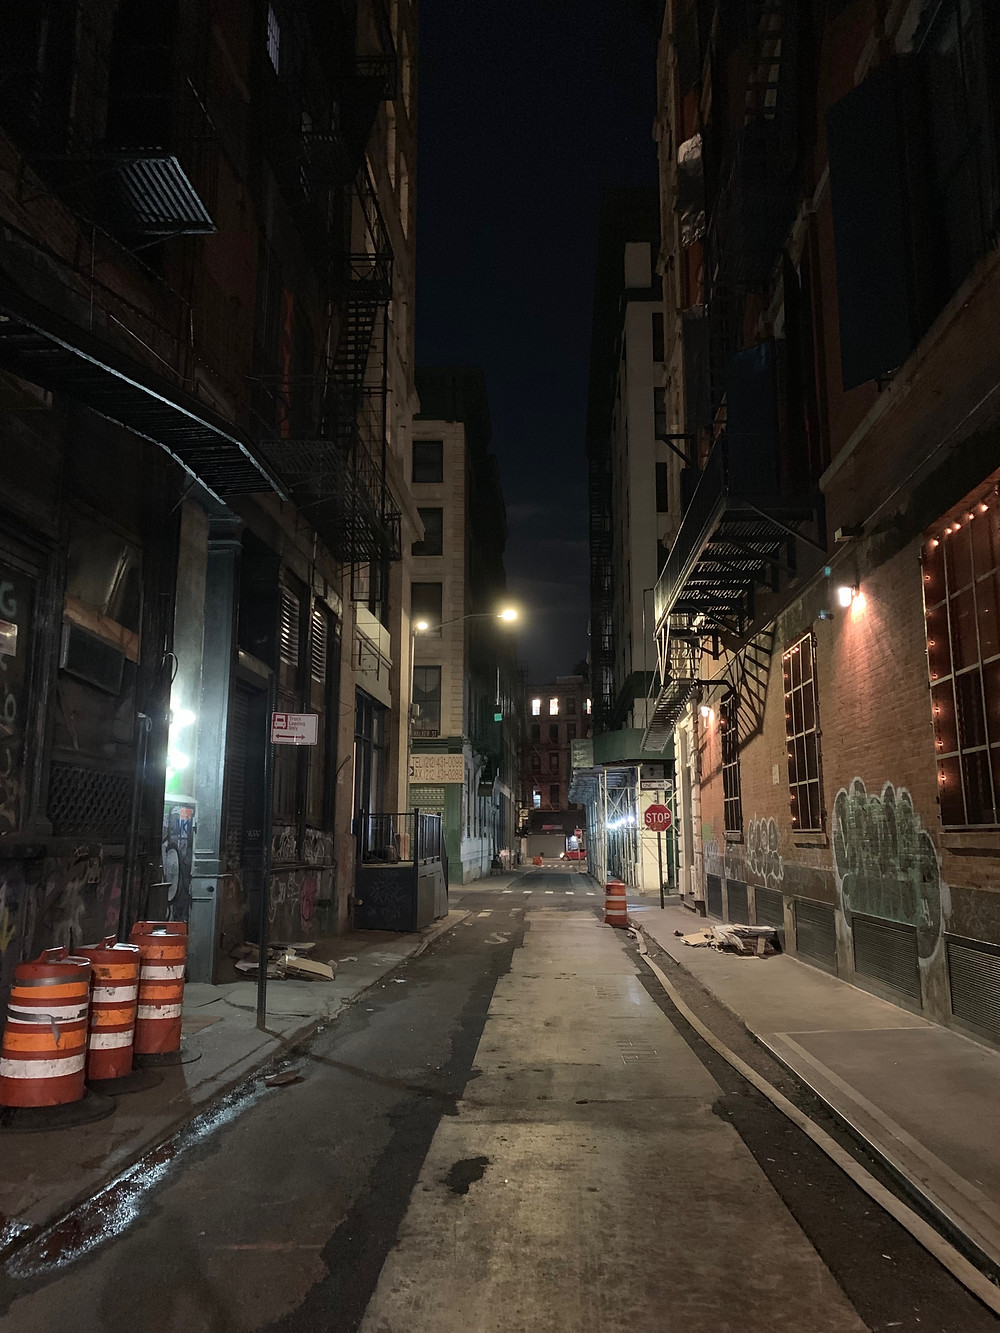 Cortland Alley (not edited photo)